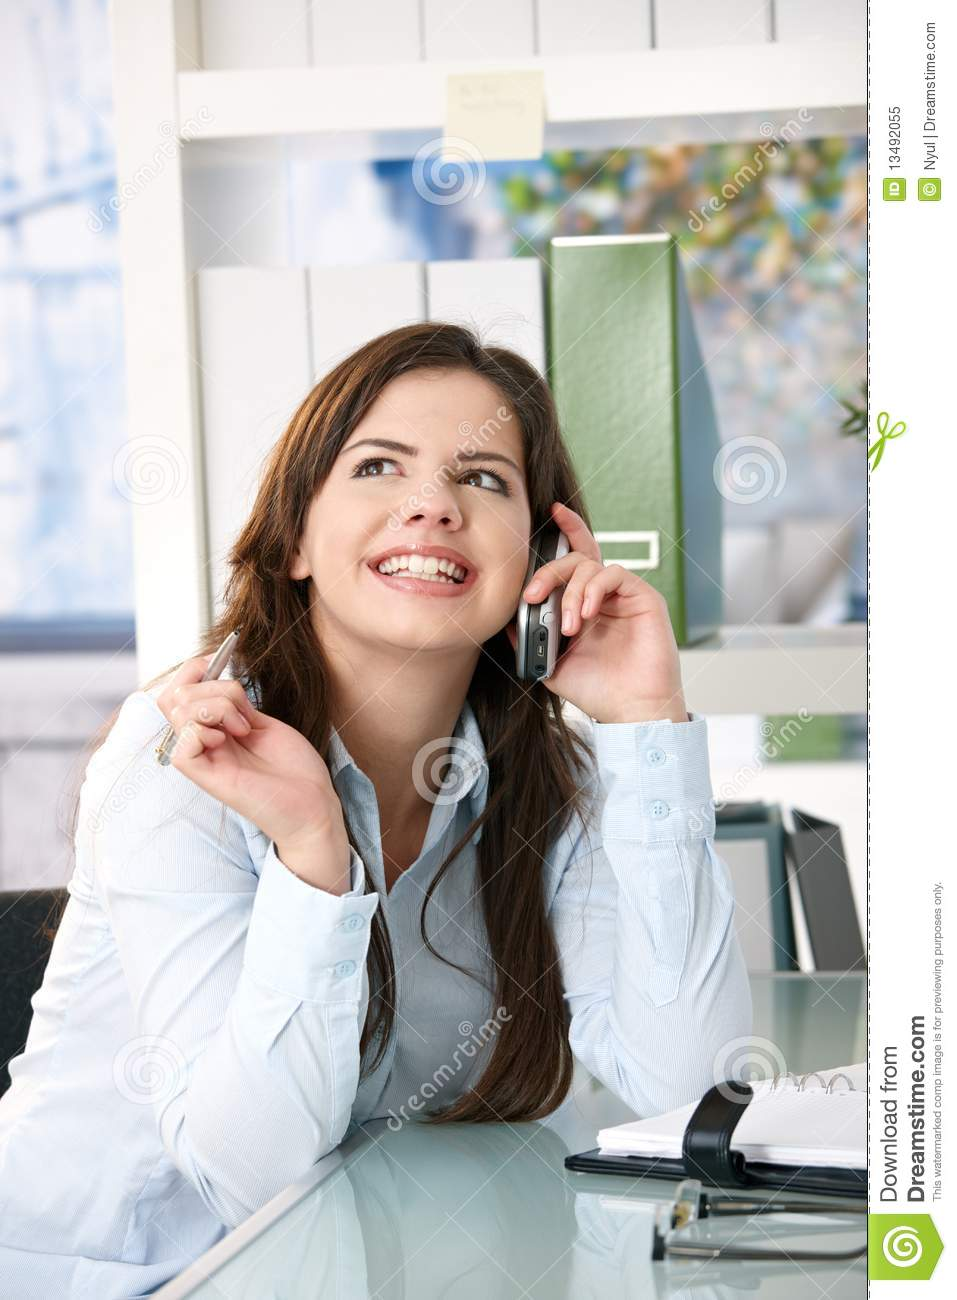 Girl On Phone Call In Office Stock Image - Image of